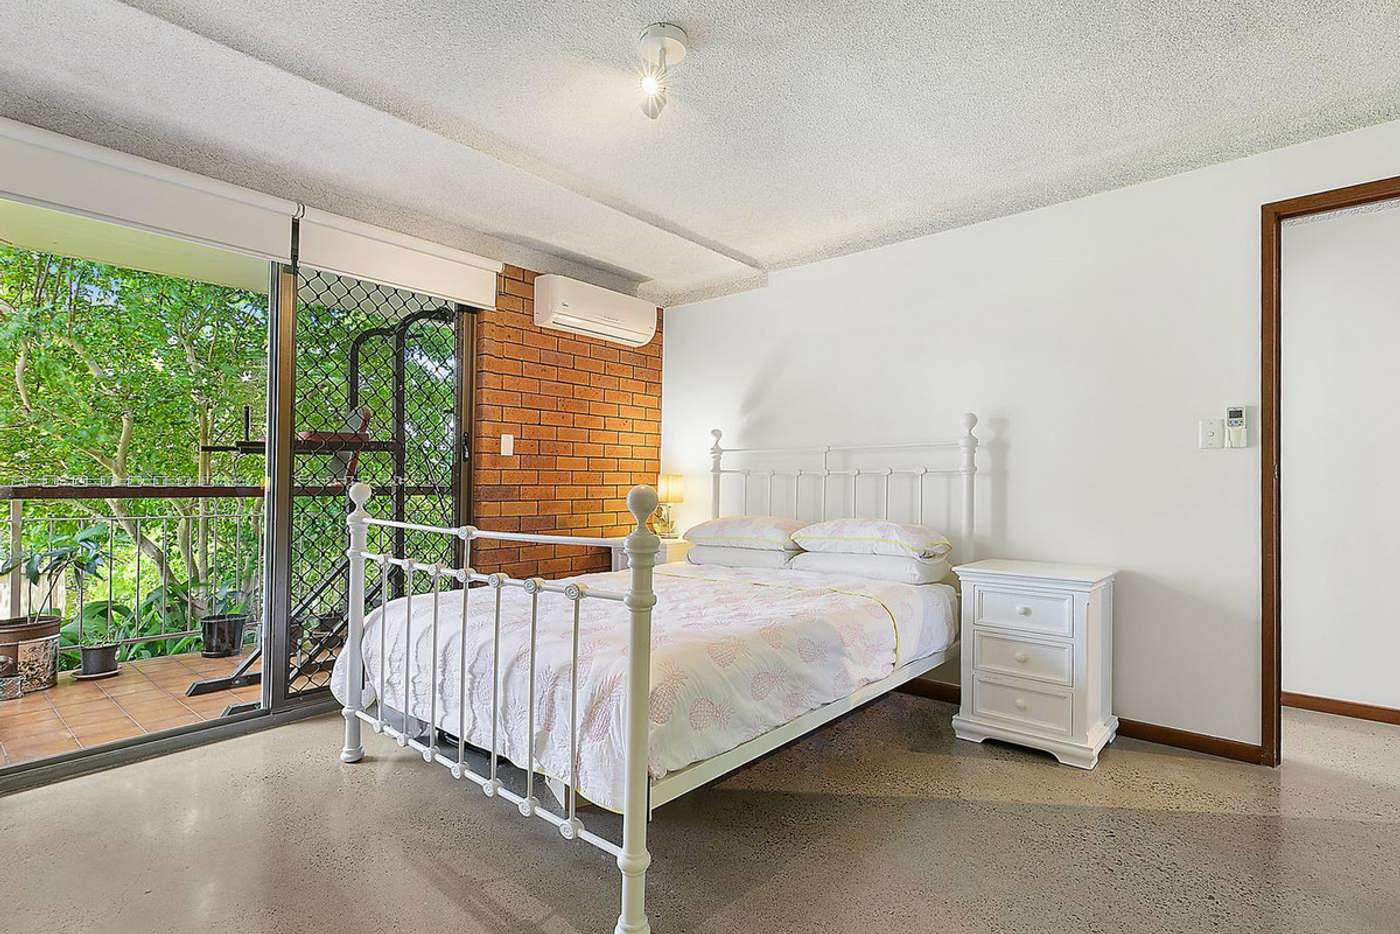 Fifth view of Homely apartment listing, 2/3 Curd Street, Greenslopes QLD 4120